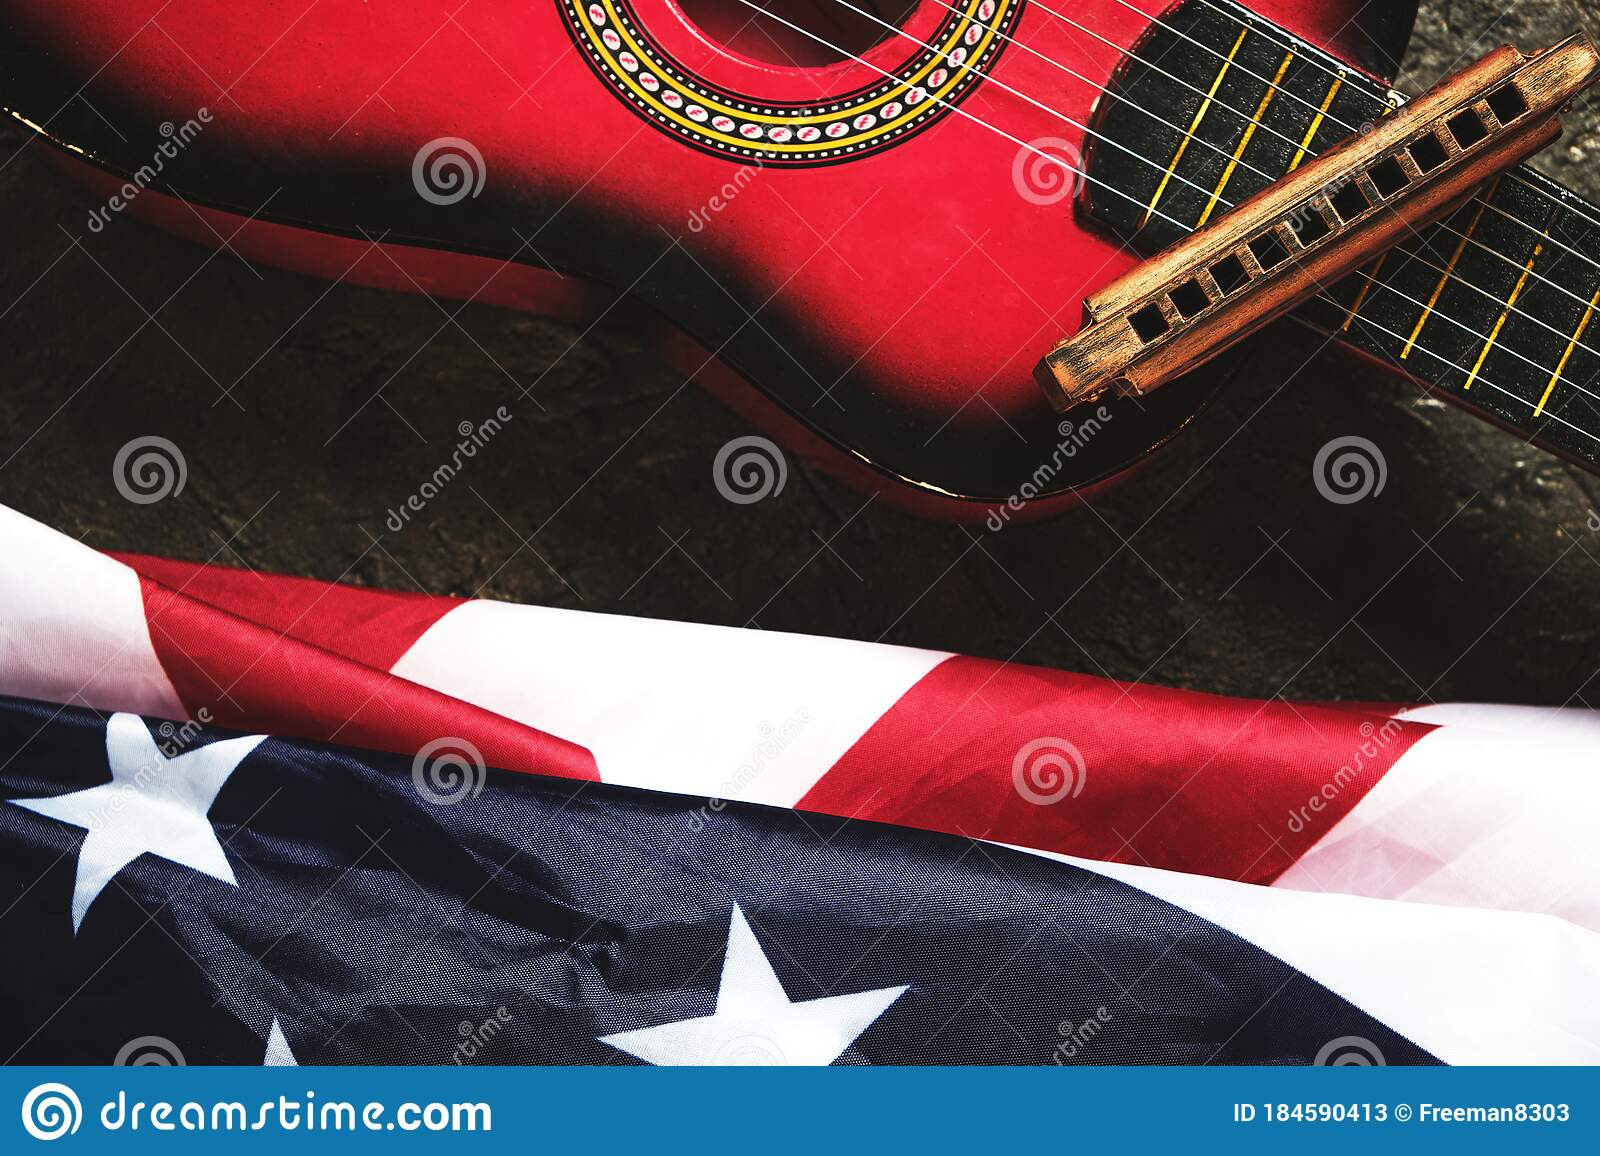 Star Spangled Banner Guitar And Harmonica Musical Instrument And Flag Of The United States Of America Stock Image Image Of Reflection Flag 184590413